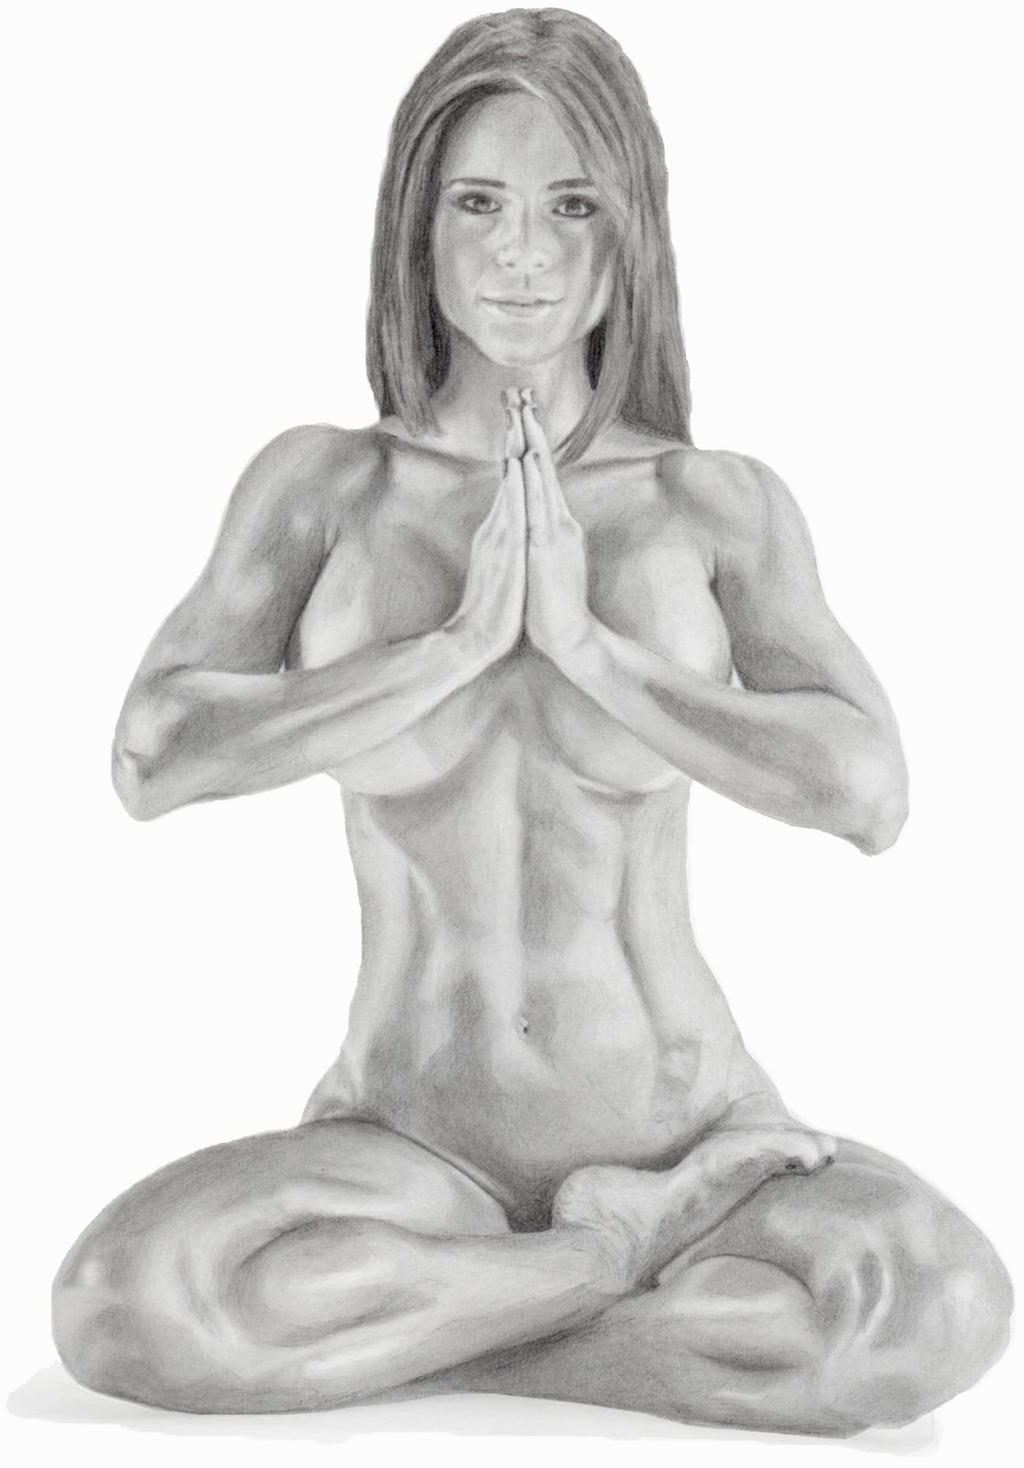 Michelle Lewin by Jtownsend01 on DeviantArt